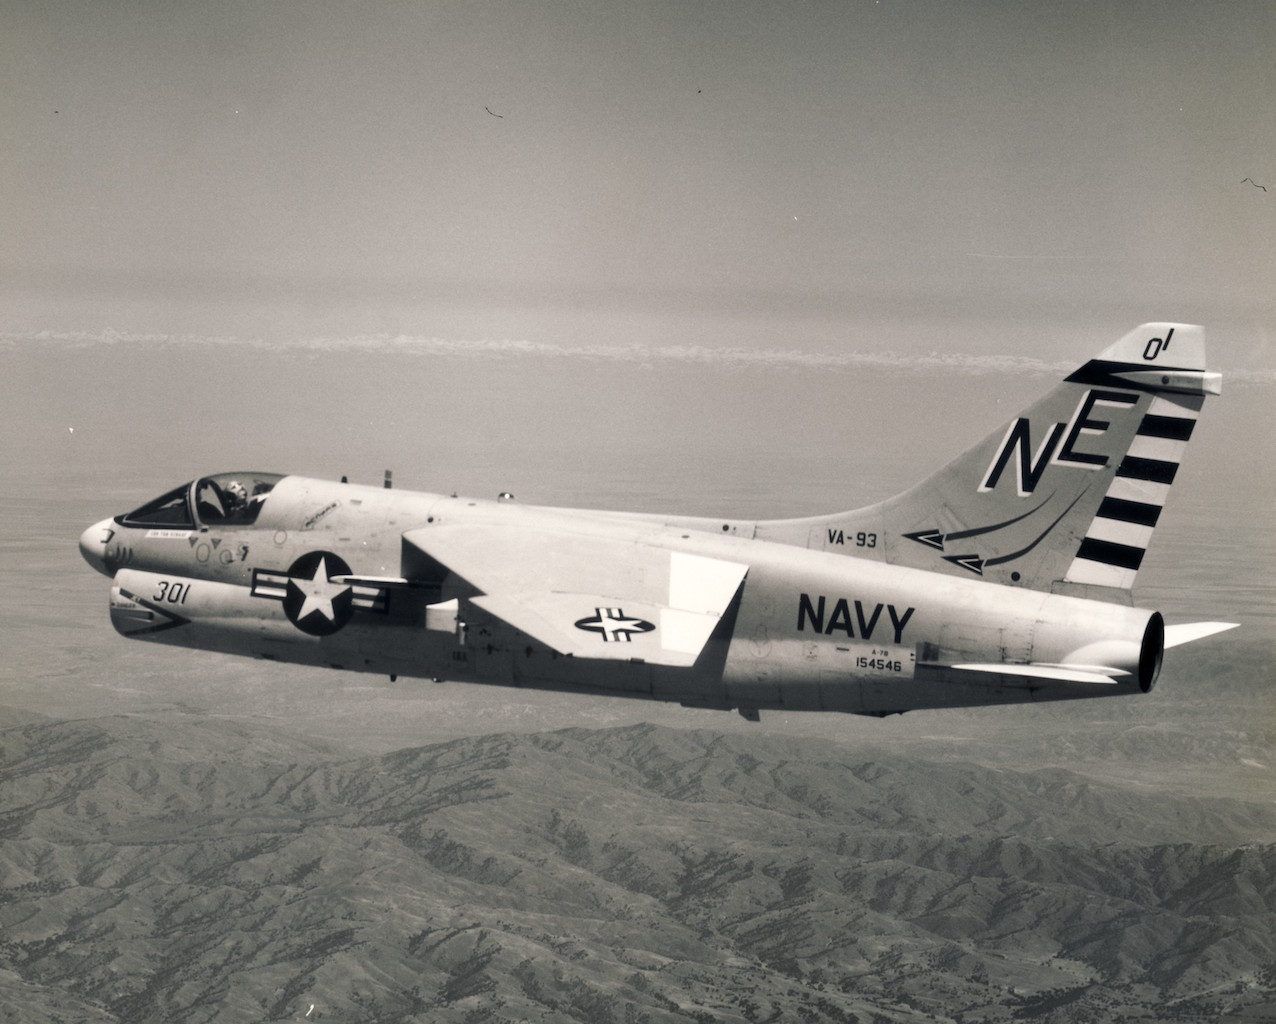 Vought A-7B of the VA-93 - May 15, 1969. Stephen Chapis Collection